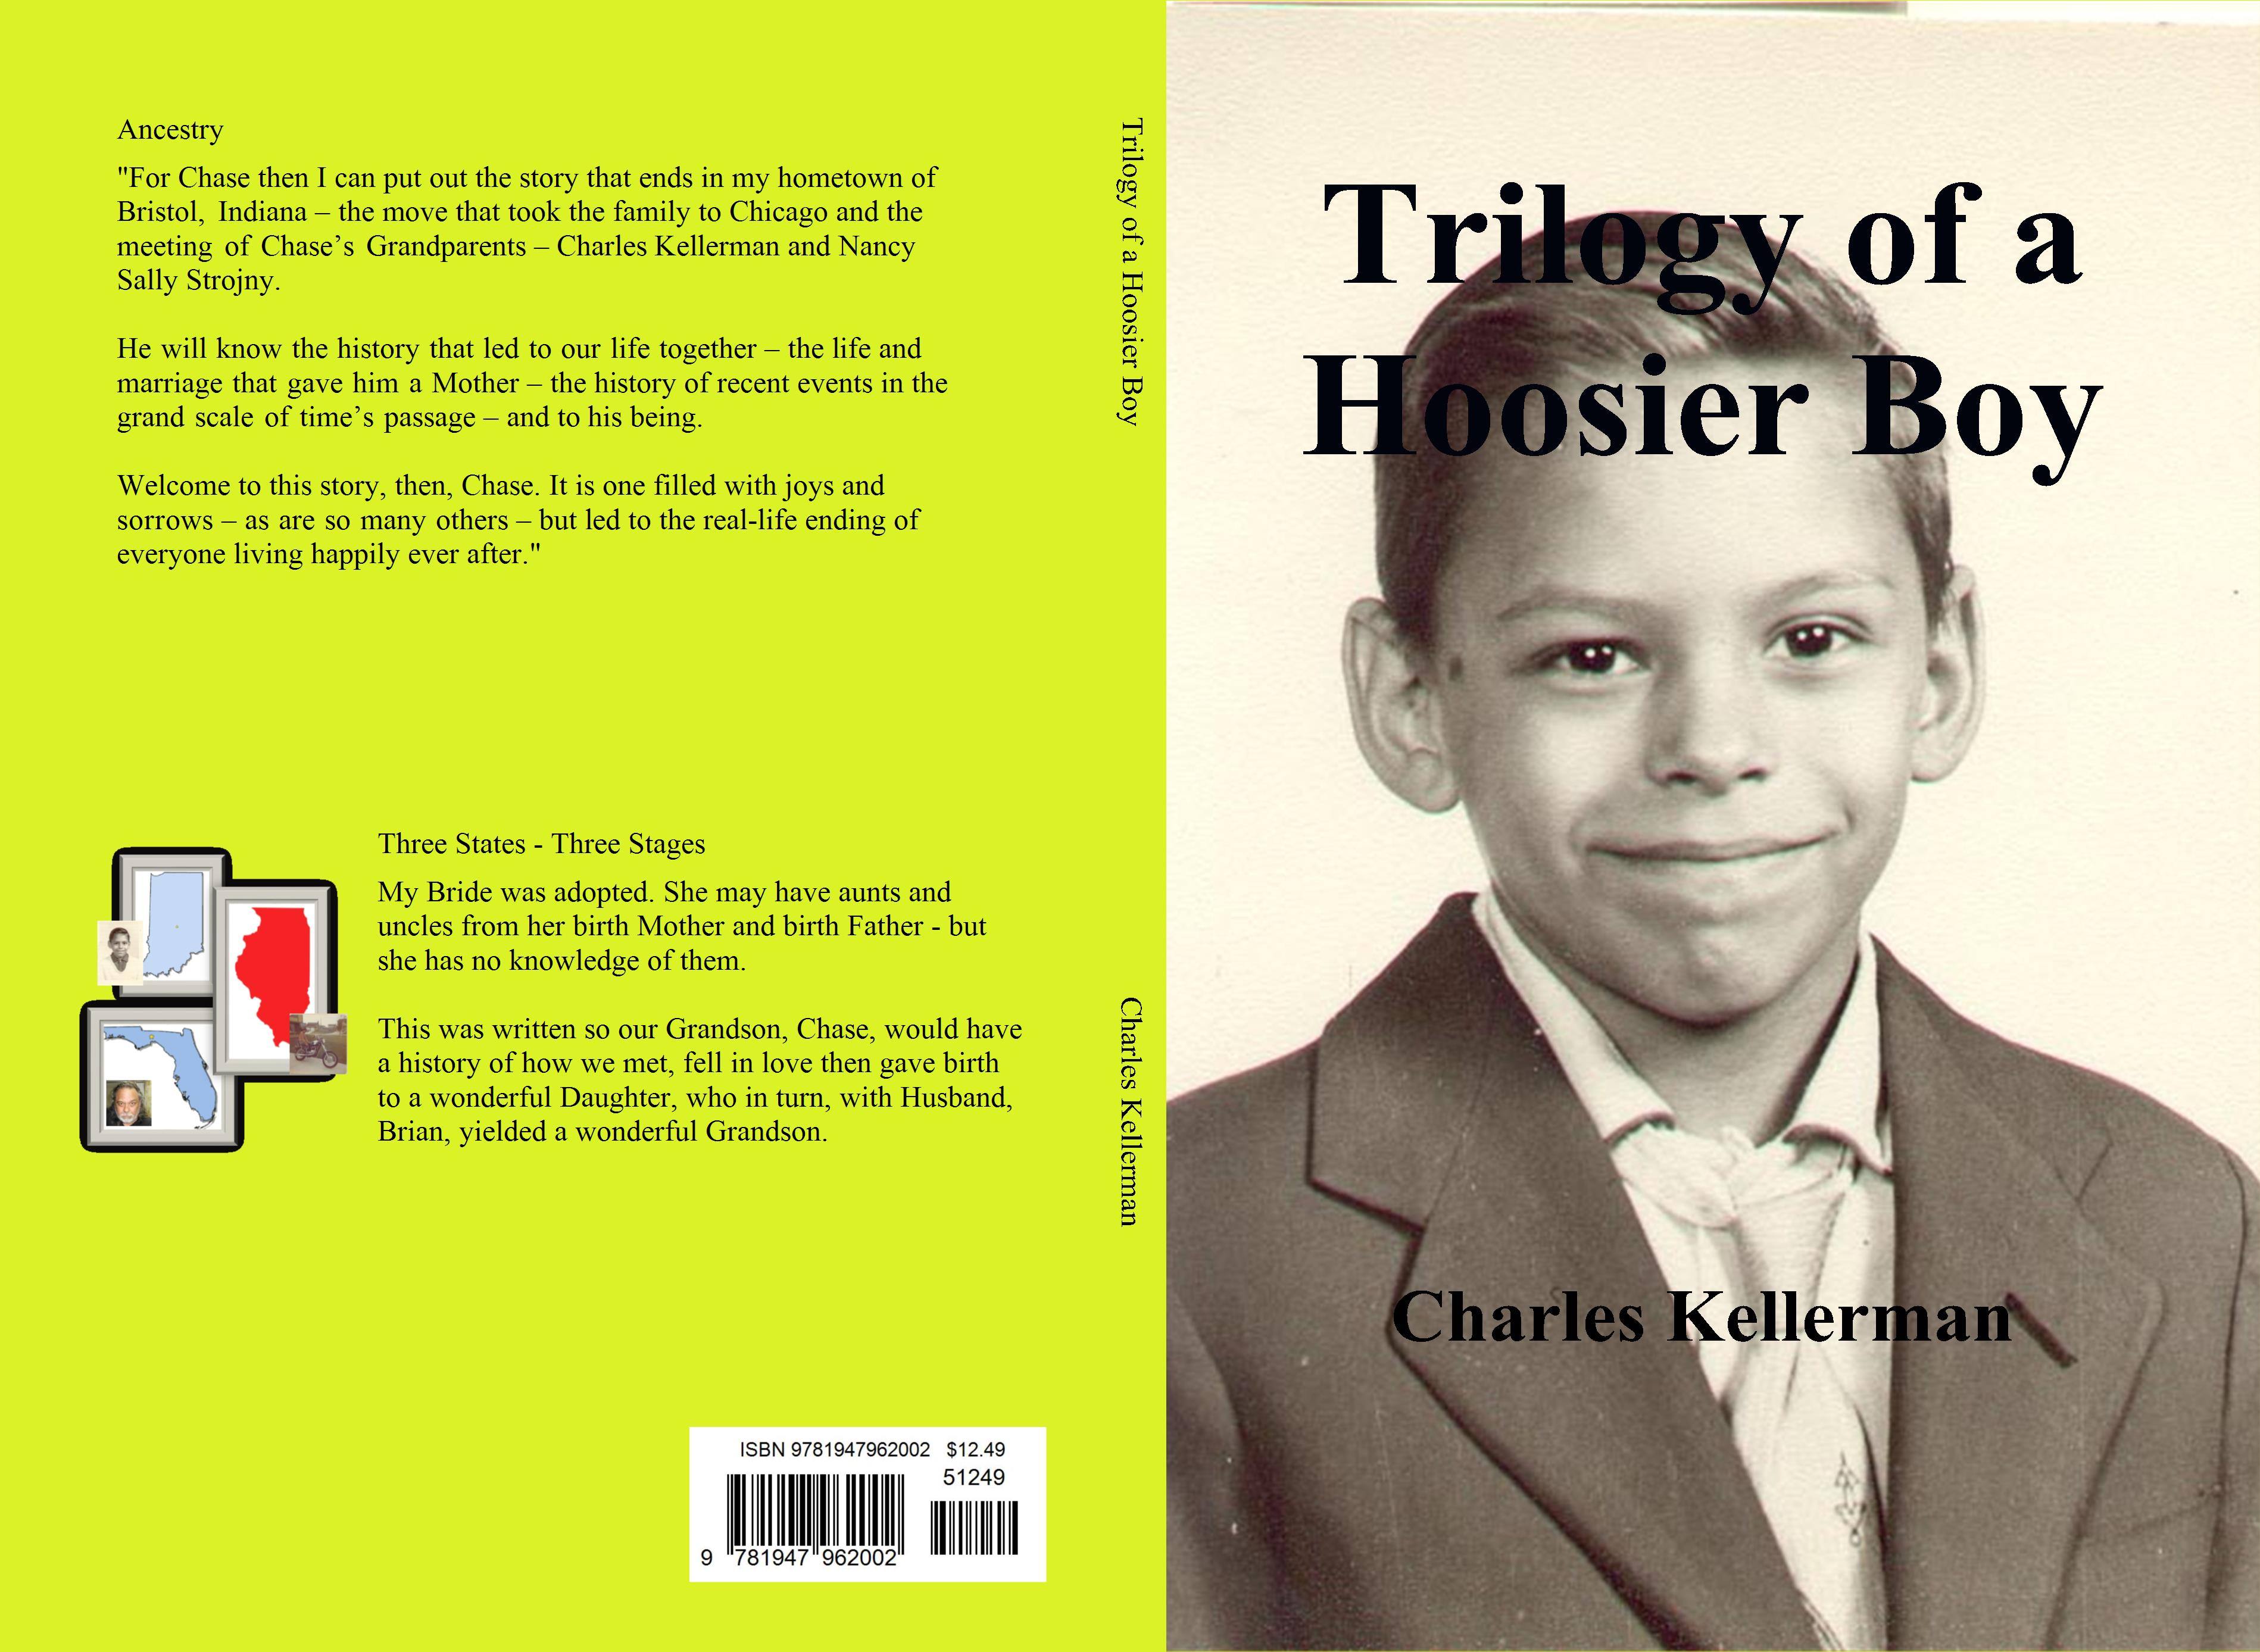 Trilogy of a Hoosier Boy cover image